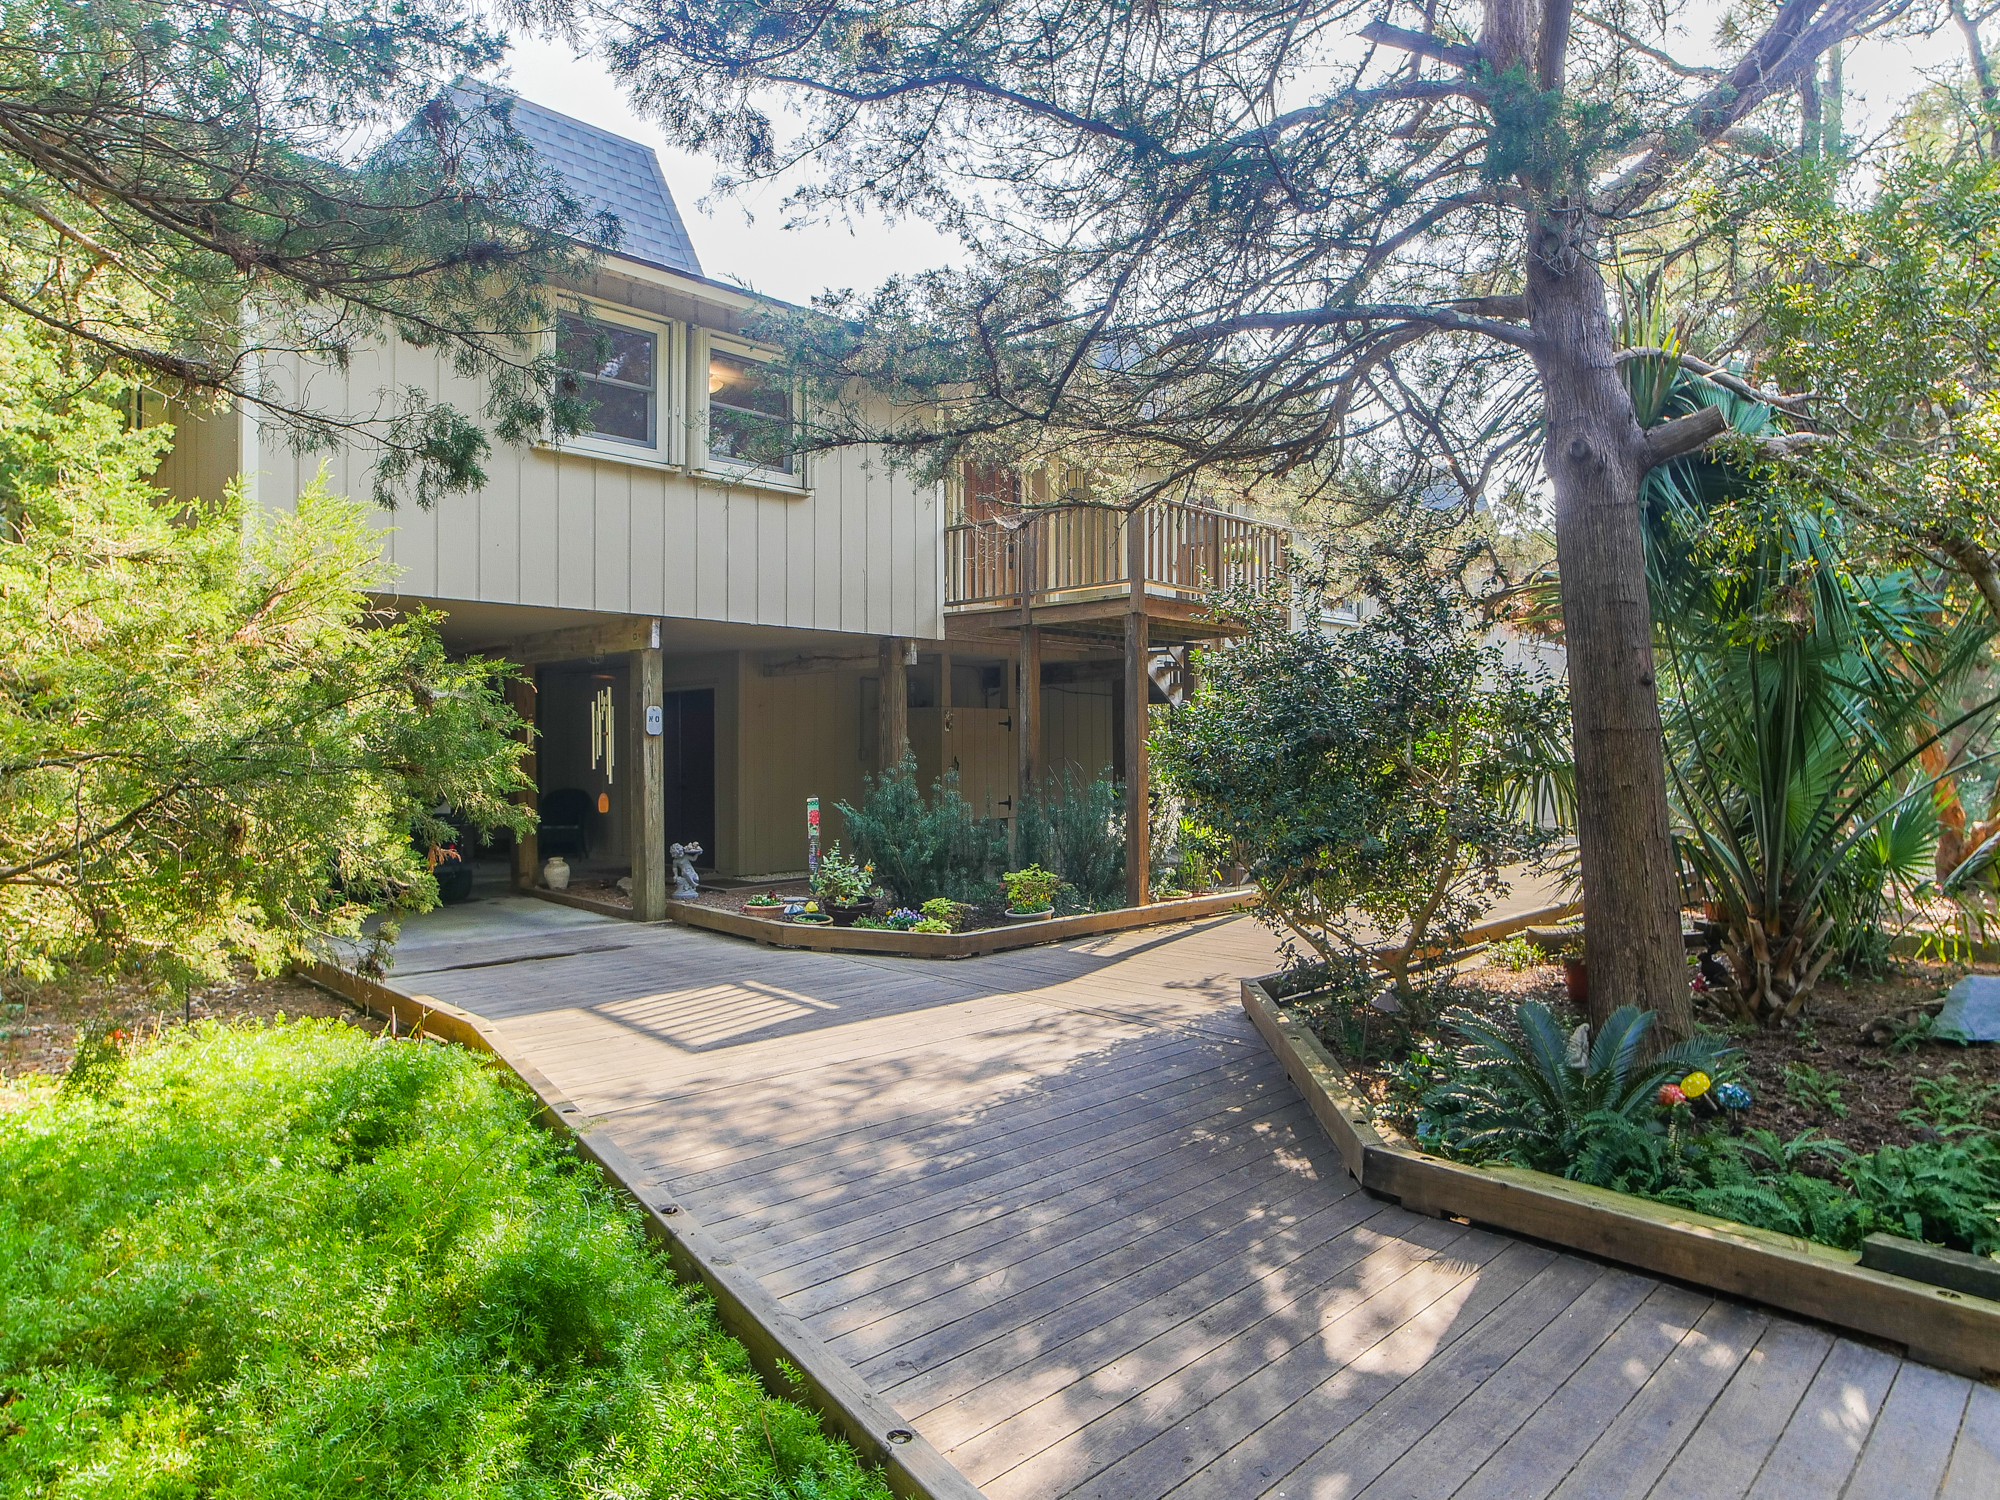 Single Family Home for Sale at Exquisite Home overlooking a pond and Golf Course 37 Horsemint Trail Bald Head Island, North Carolina, 28461 United States